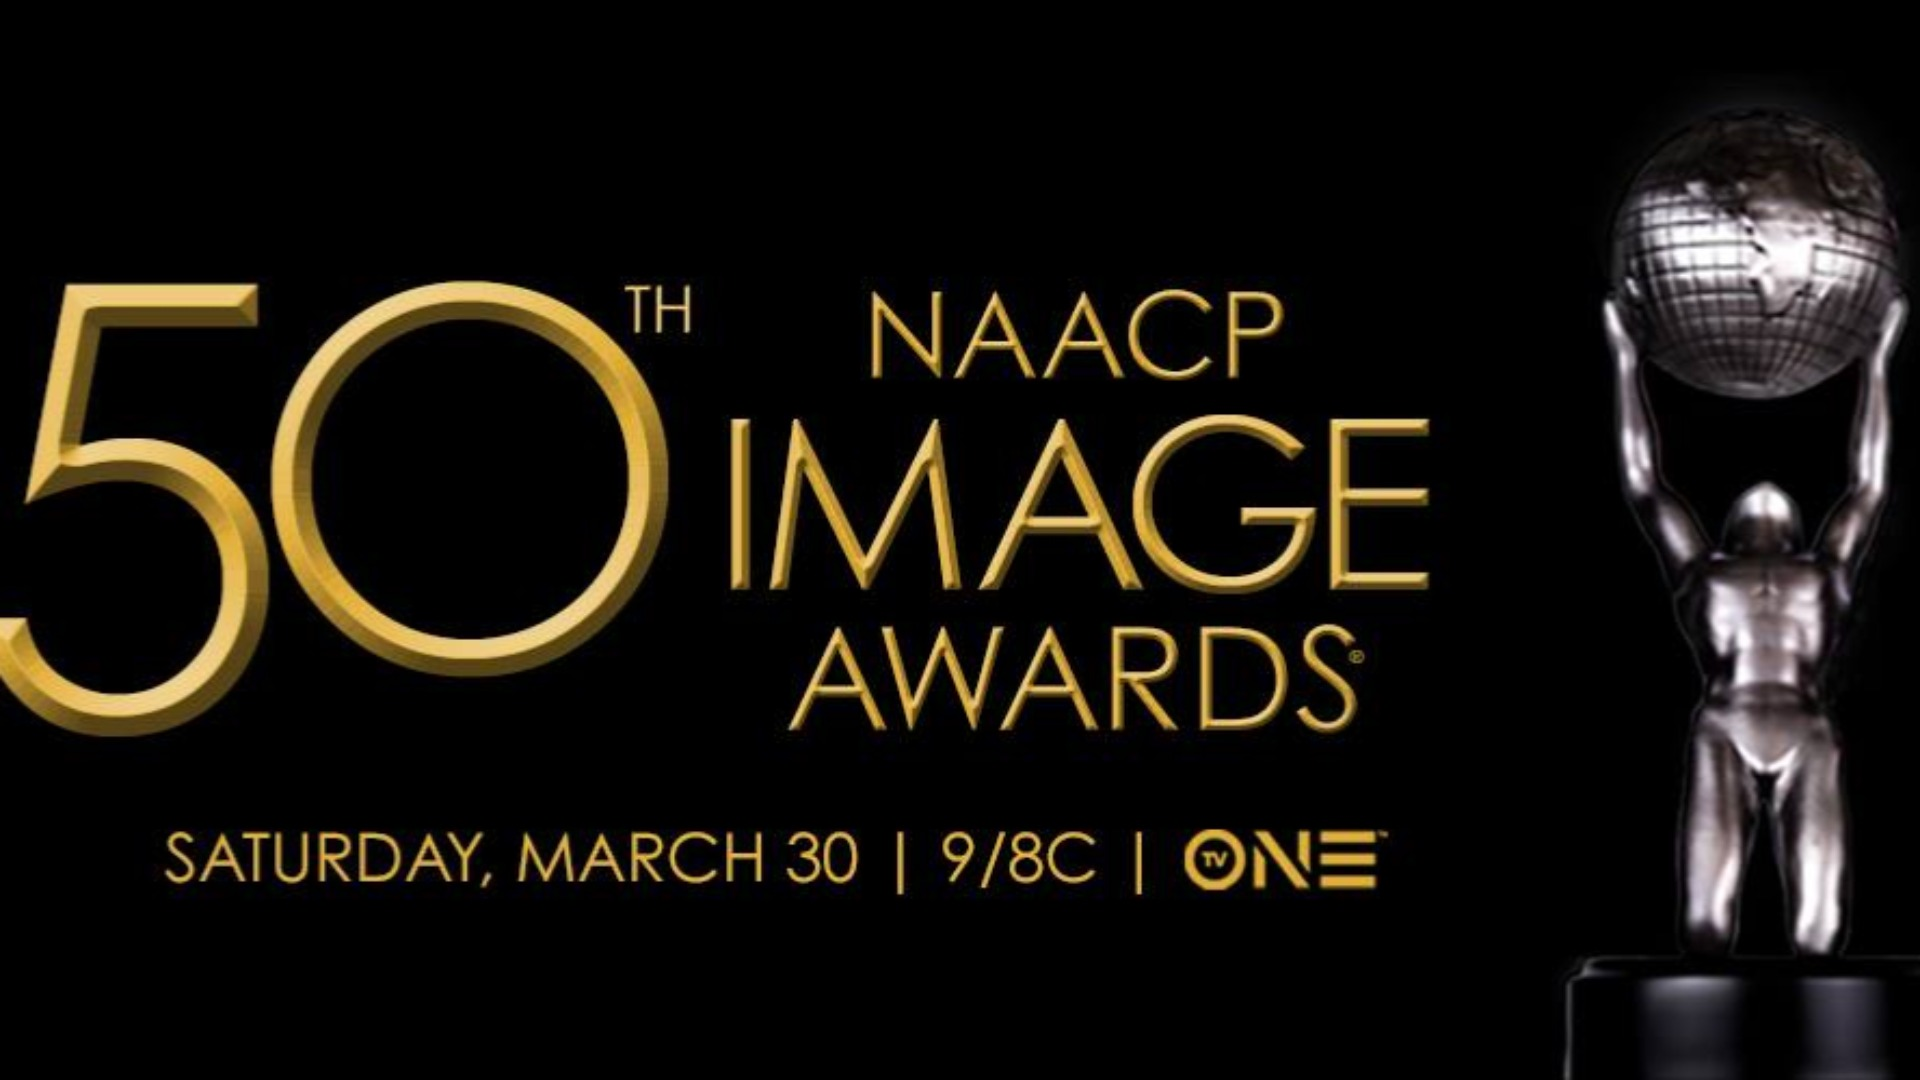 The NAACP Image Award is an annual awards ceremony presented by the U.S.-based National Association for the Advancement of Colored People (NAACP) to honor outstanding African Americans[citation needed] in film, television, music, and literature.[1] Similar to other awards, like the Oscars and the Grammys, the over 40 categories of the Image Awards are voted on by the award organization's members (in this case, NAACP members). Honorary awards (similar to the Academy Honorary Award) have also been included, such as the President's Award, the Chairman's Award, the Entertainer of the Year, and the Hall of Fame Award.Wikipedia